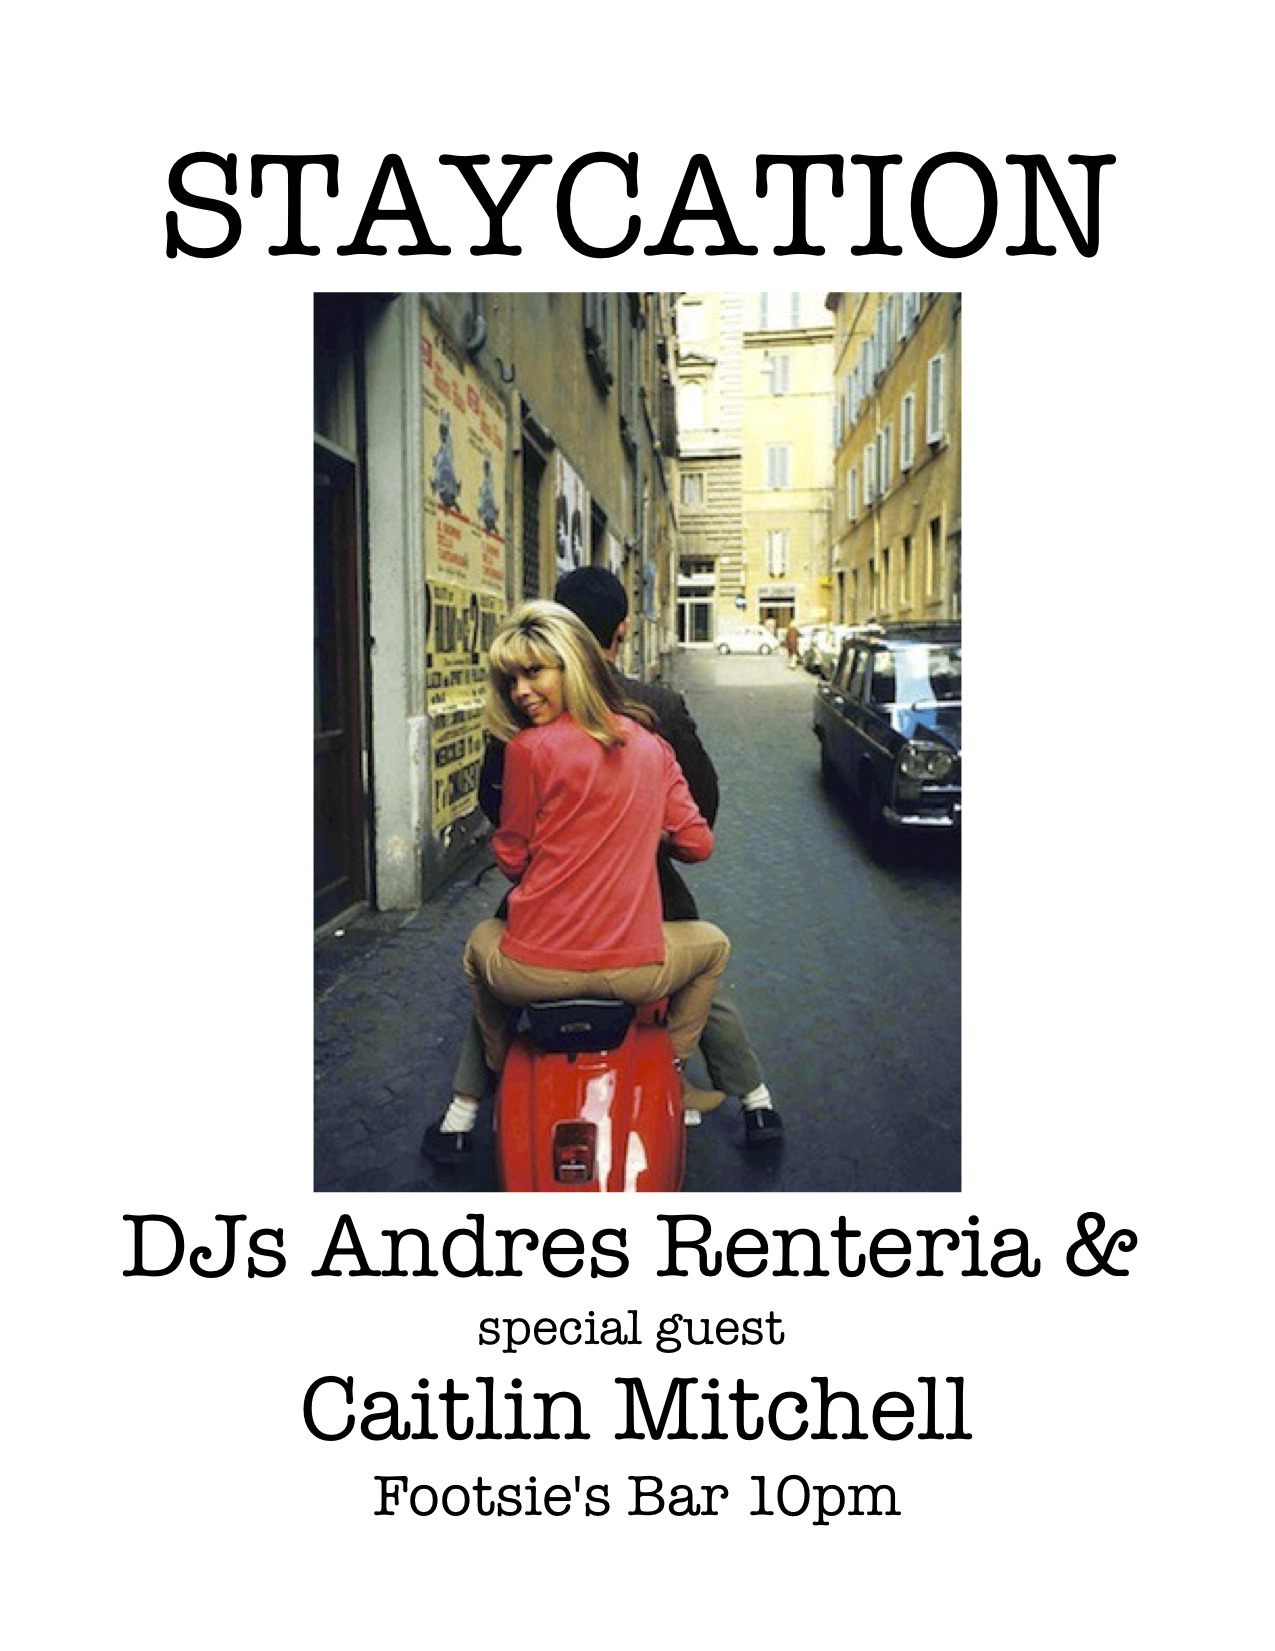 Every Friday at Footsie's Bar it's Staycation with me, Andres Renteria, and special guests spinning records from 10pm-2am!  This week we have Caitlin Mitchell guesting…soul, rock, psych, international shakers, funky 45s, rollerskatin' jams and more!!!!